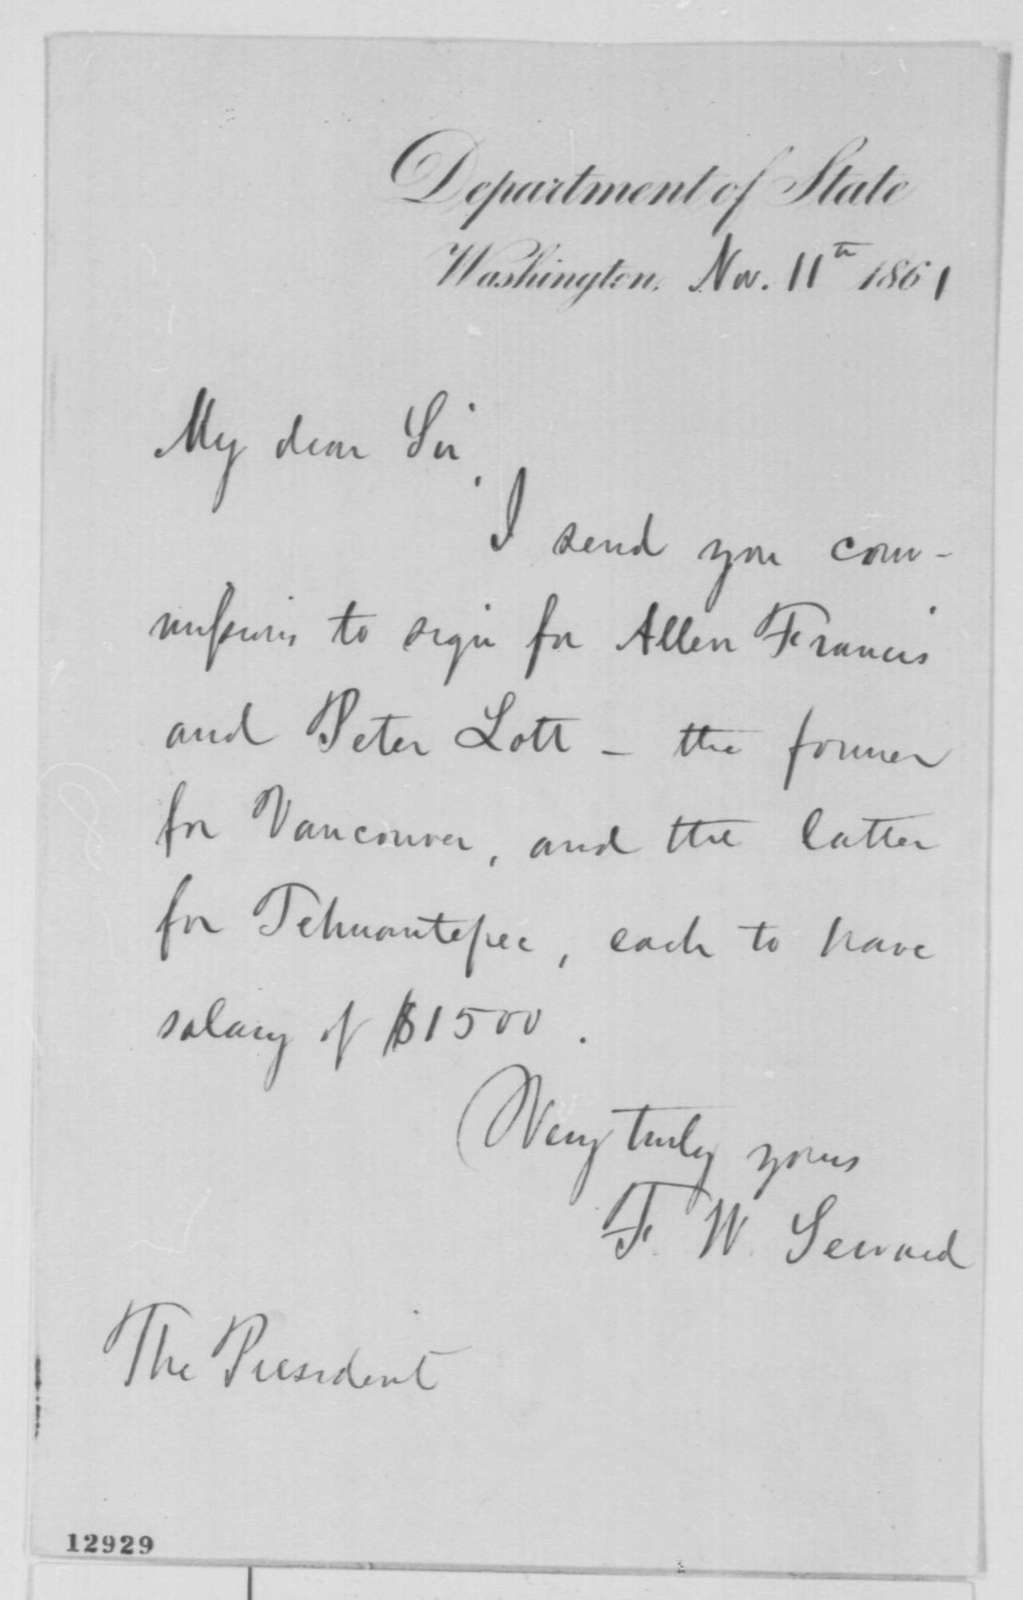 Frederick W. Seward to Abraham Lincoln, Monday, November 11, 1861  (Forwards commissions to sign)